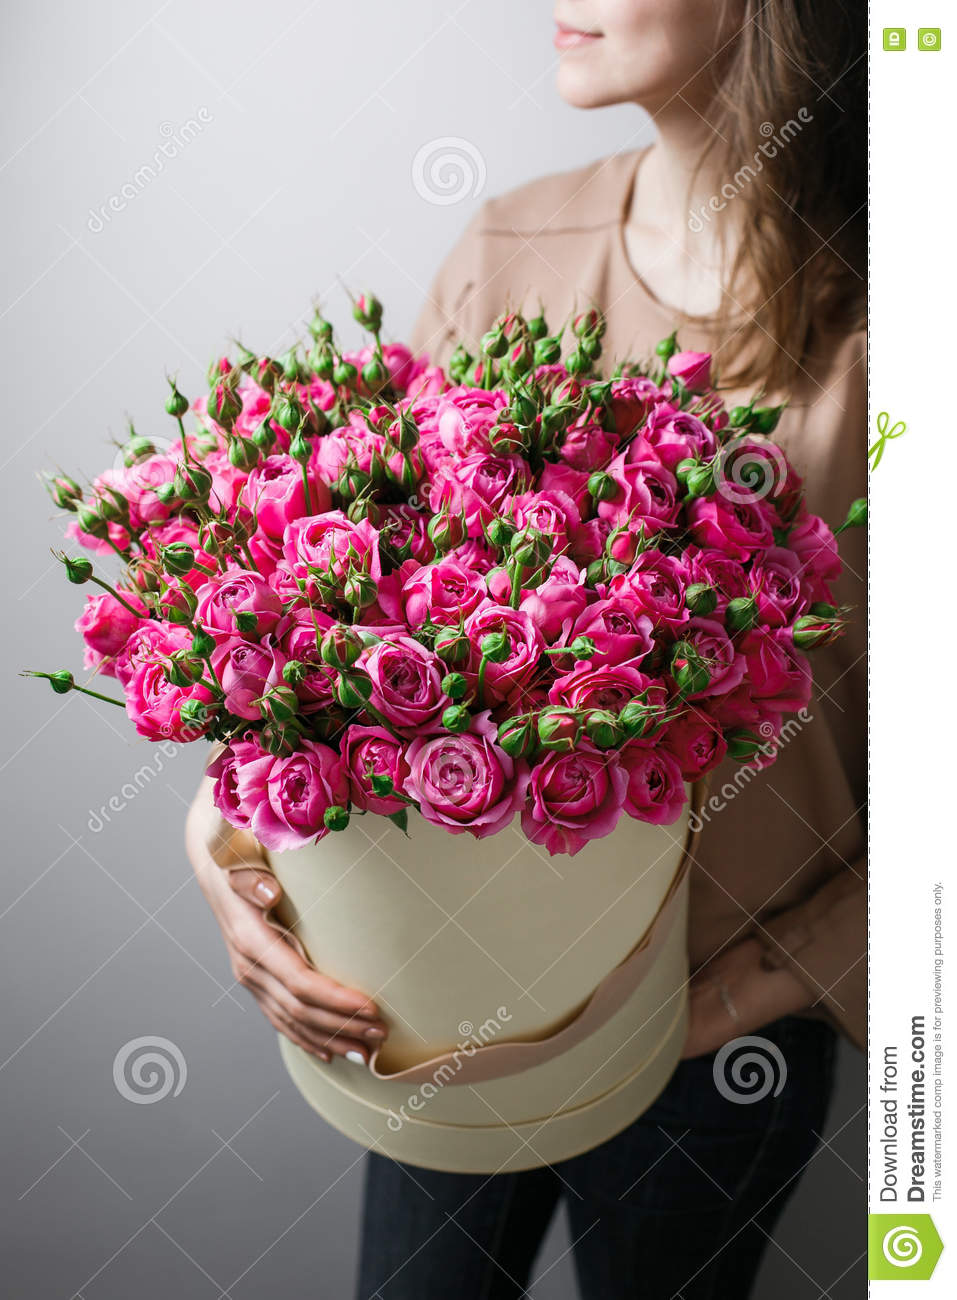 Luxury bouquets of flowers in the hat box roses in the hands women luxury bouquets of flowers in the hat box roses in the hands women pink colour peonies izmirmasajfo Choice Image